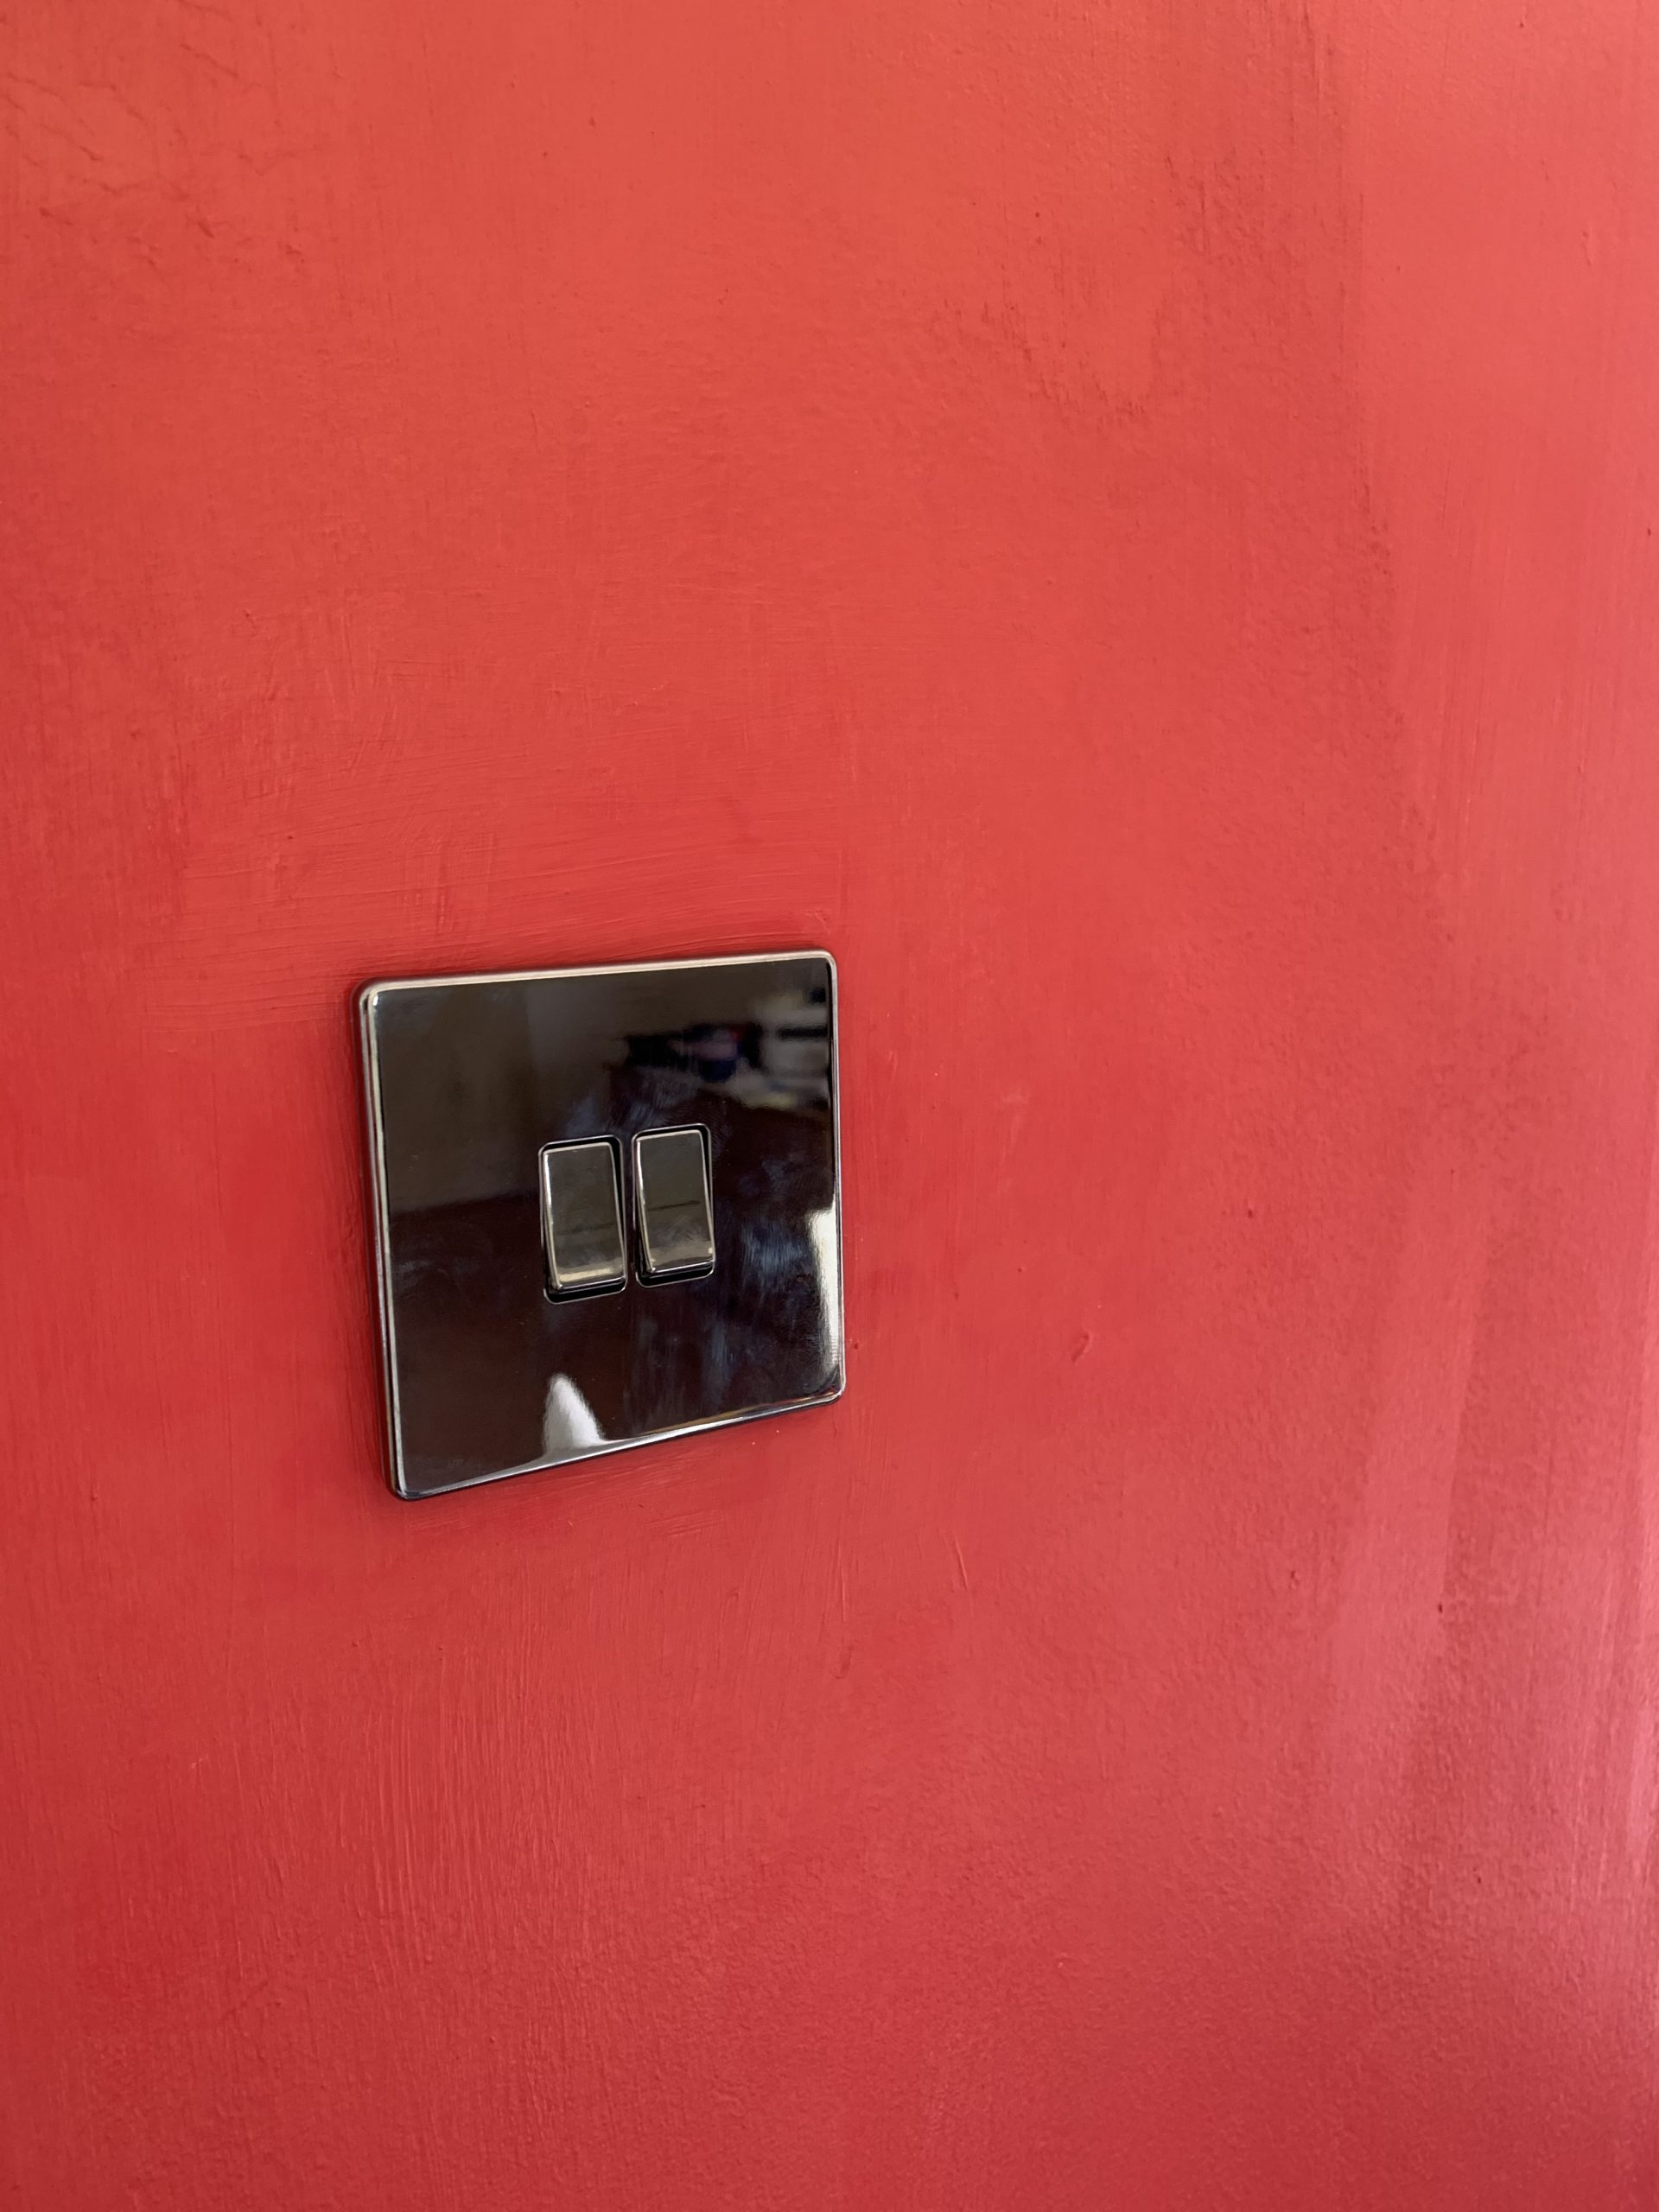 New light switches and socket fitting